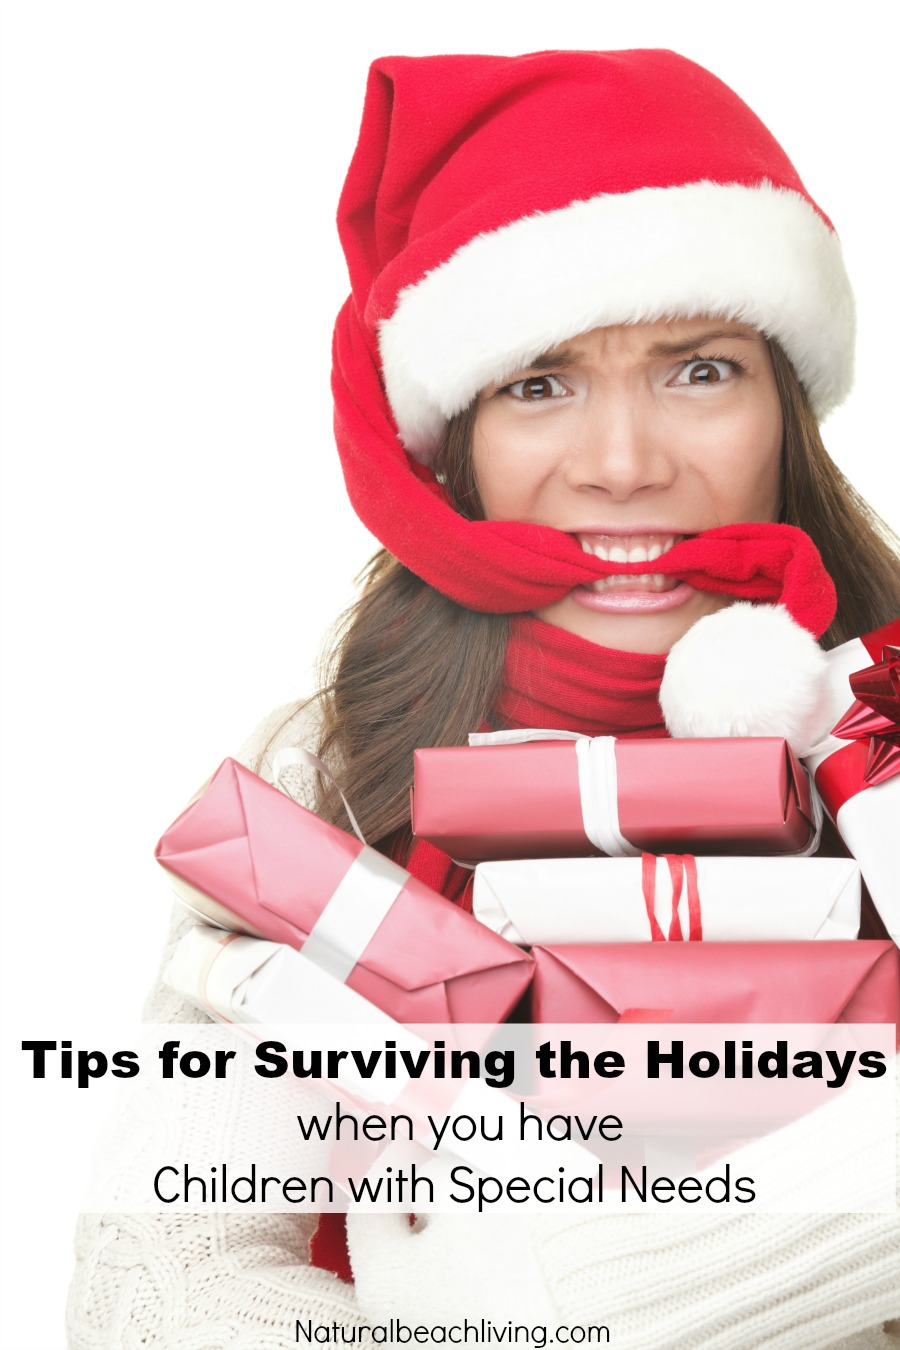 Surviving the Holidays with Special Needs